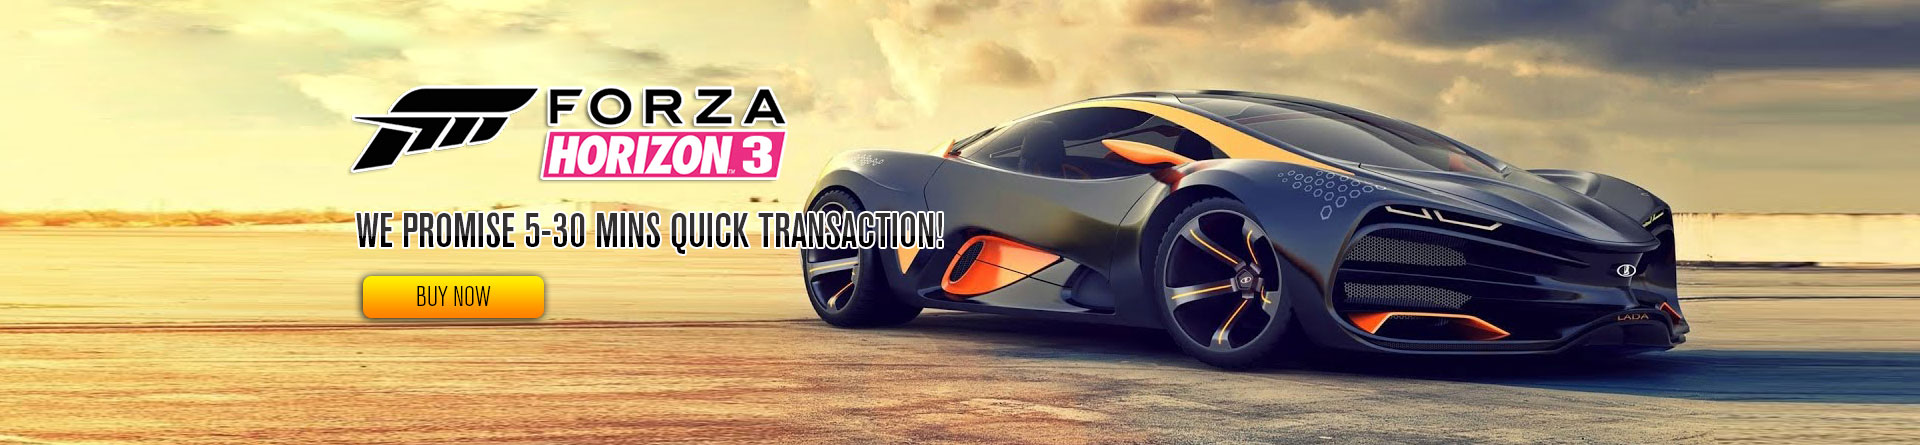 Buy Forza Horizon 3 Credits